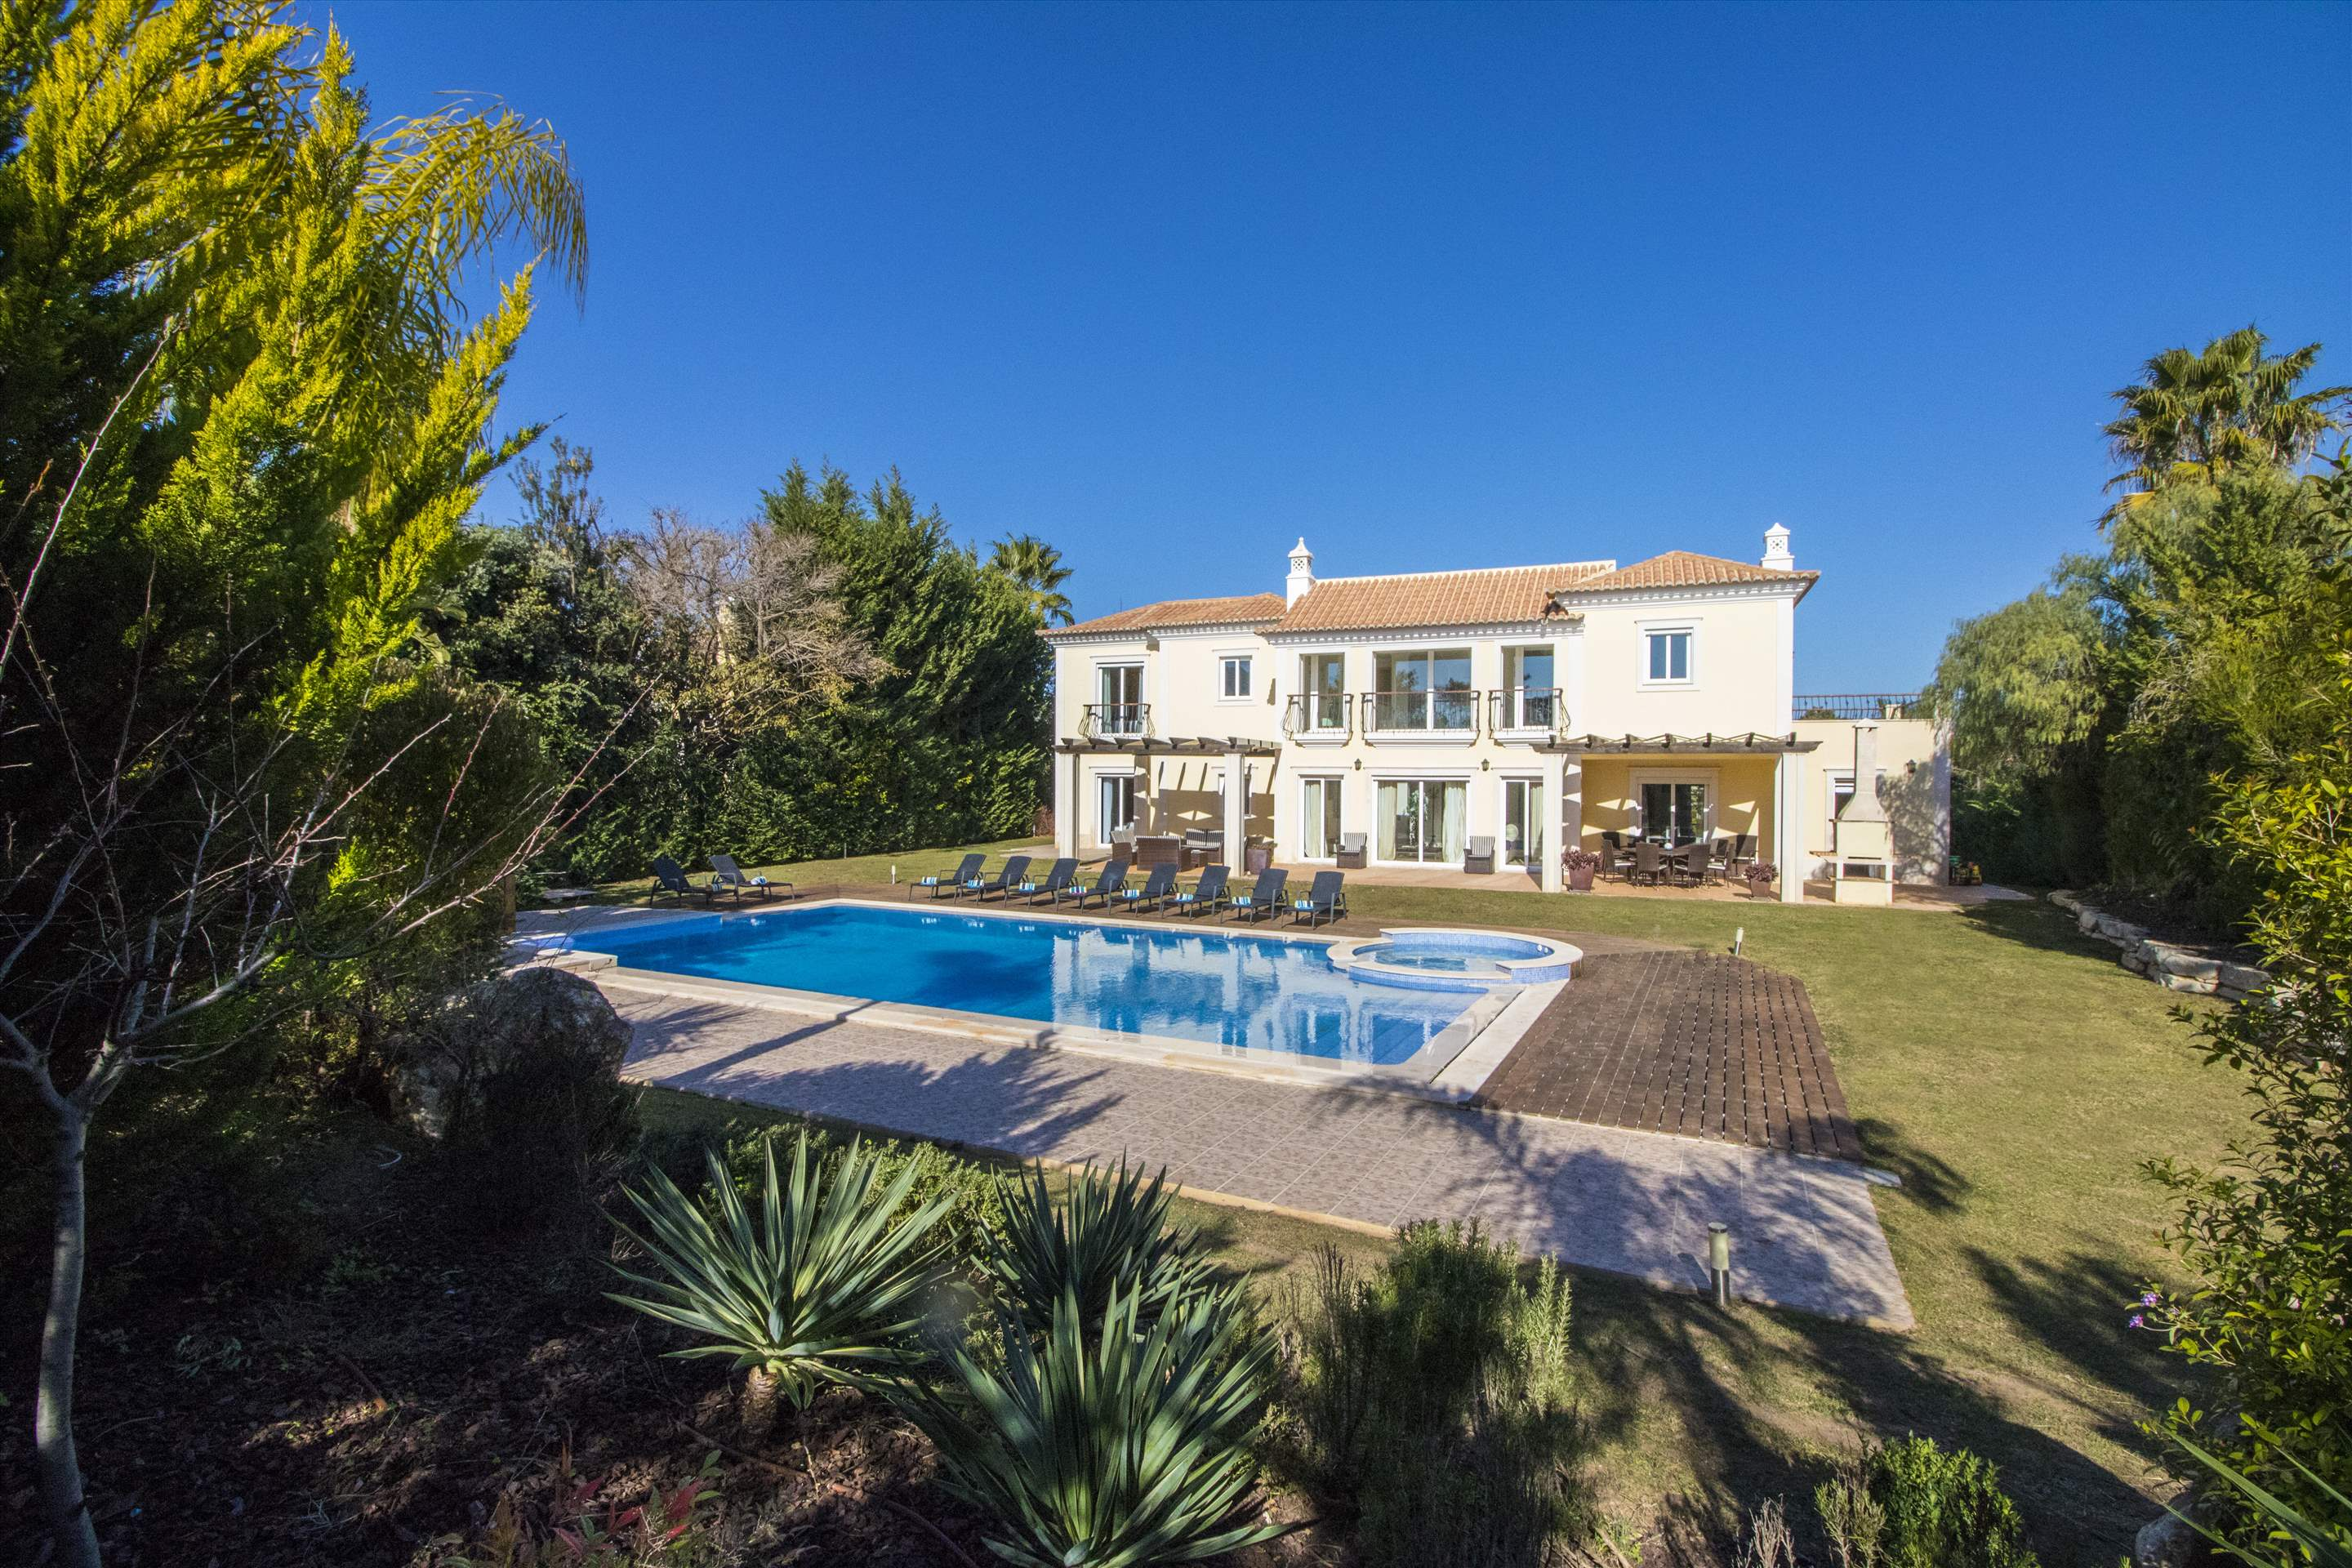 Villa Mare, 5 bedroom villa in Quinta do Lago, Algarve Photo #11